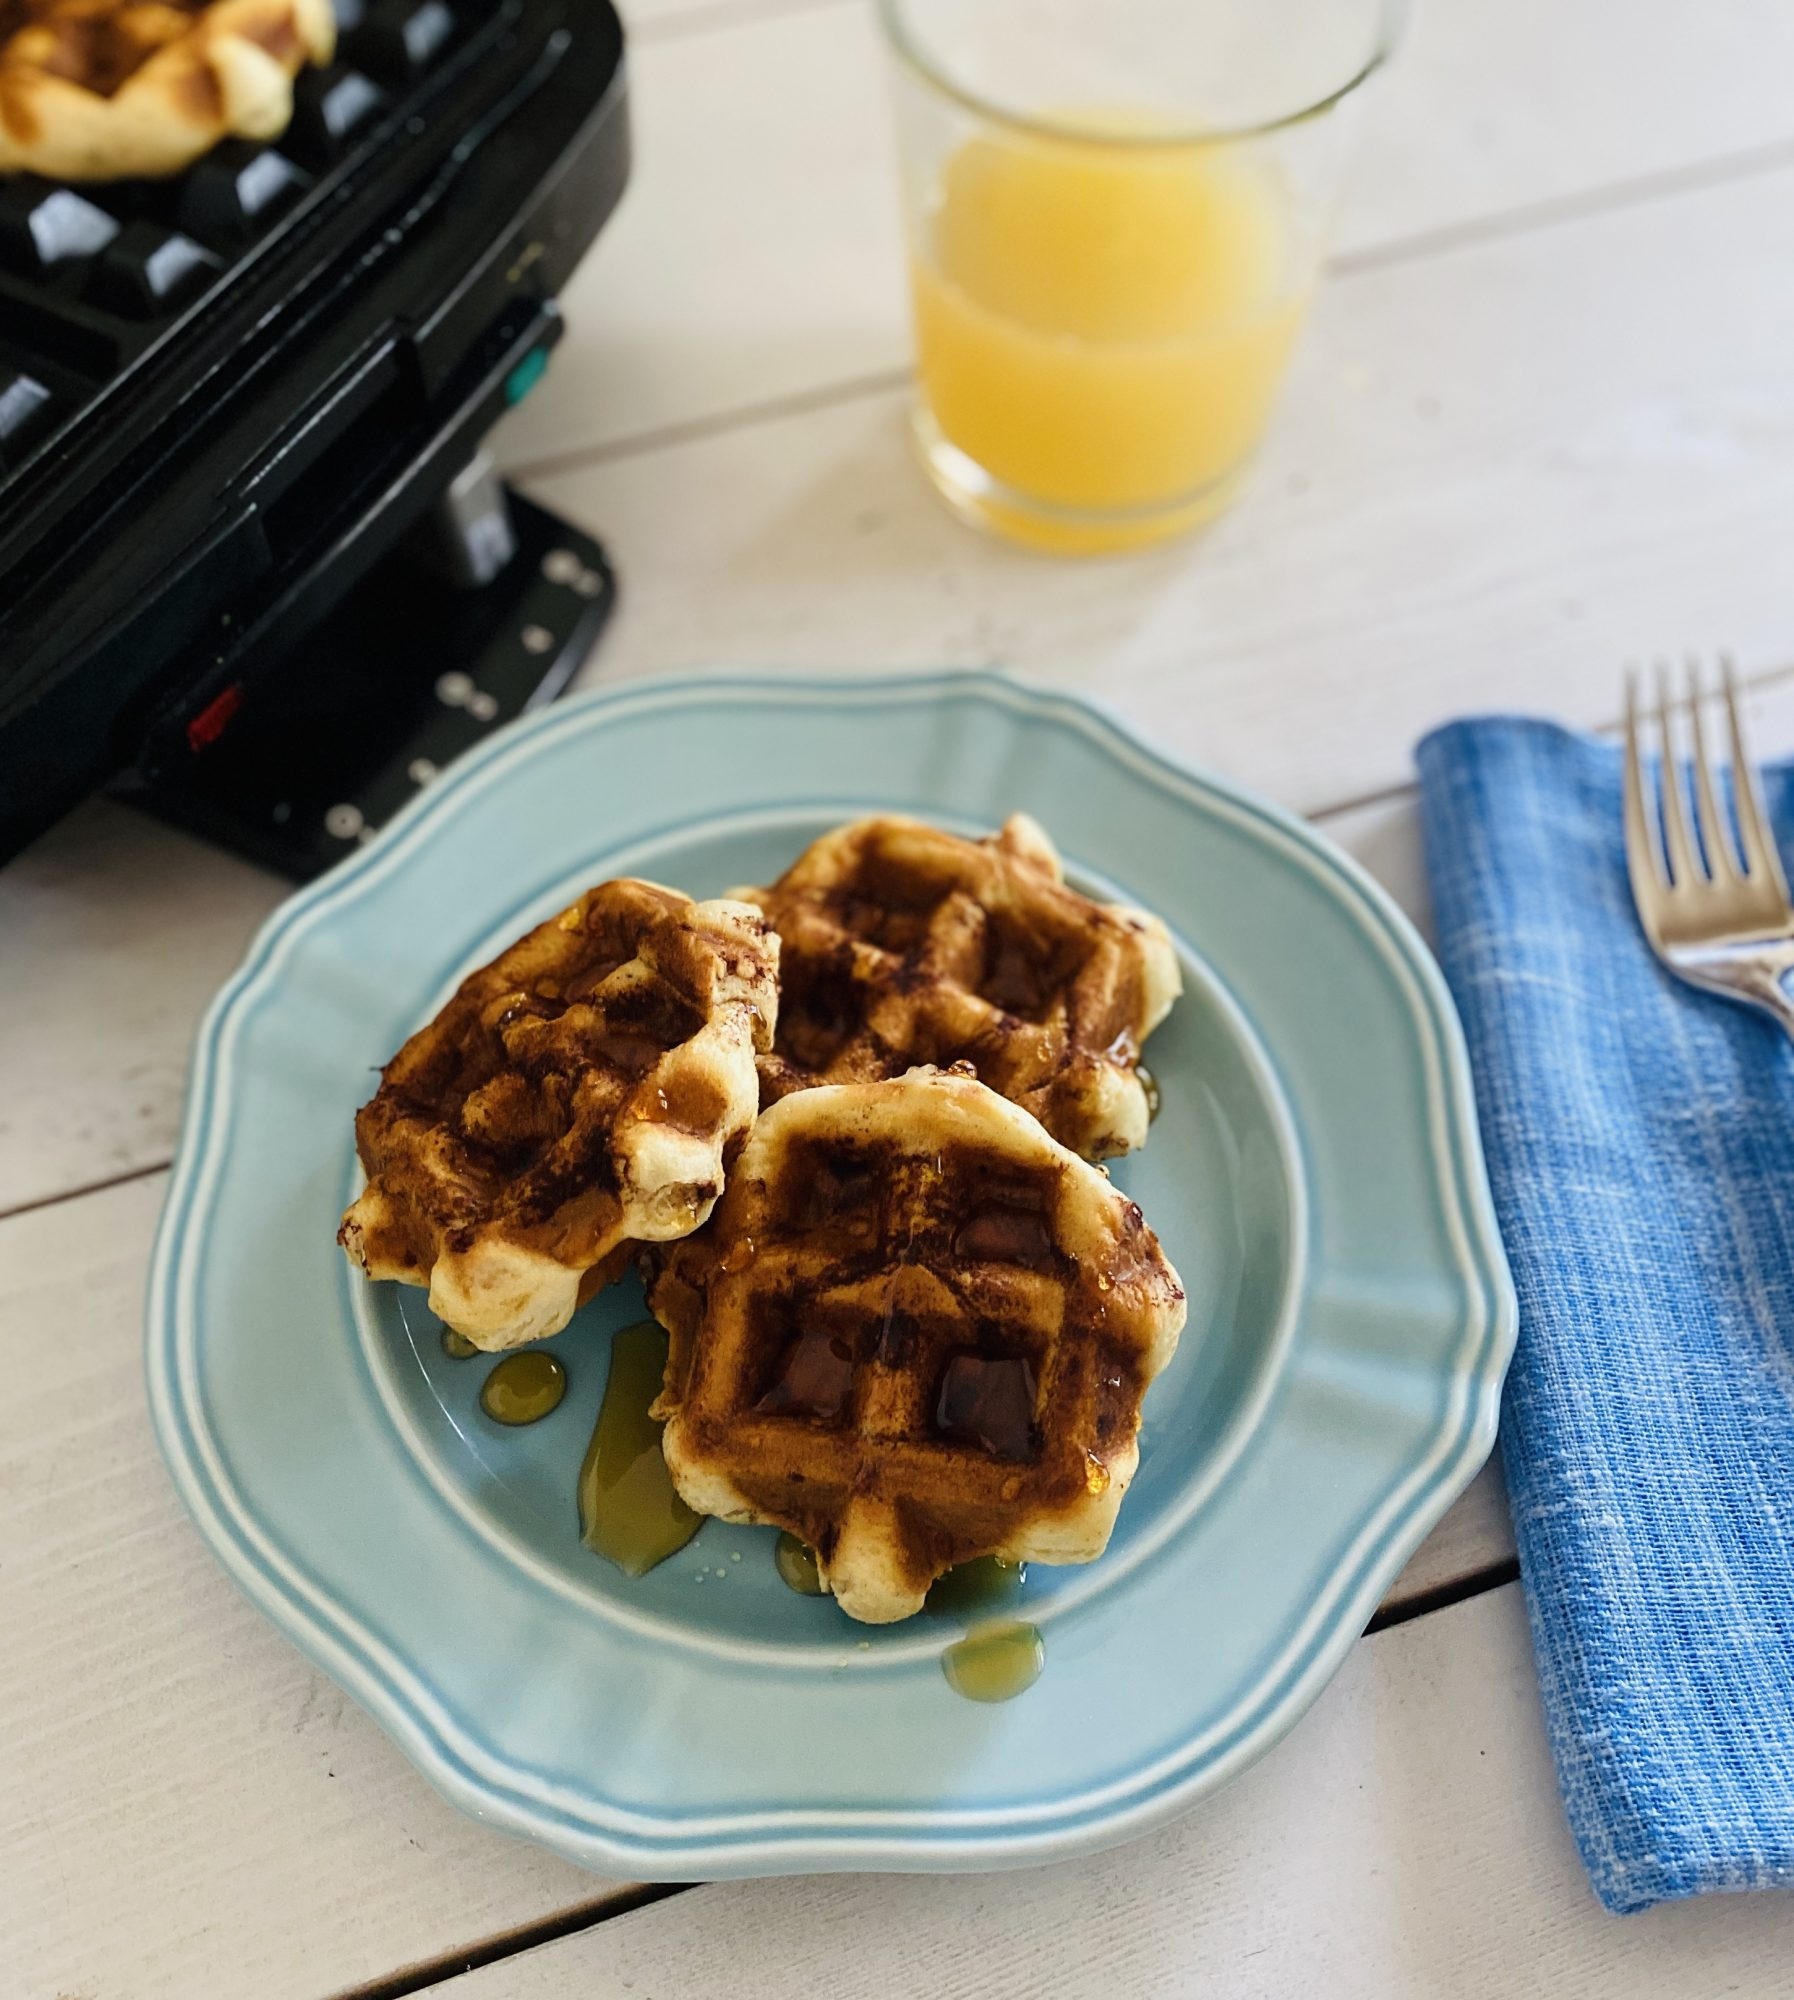 canned cinnamon roll dough baked in a waffle iron